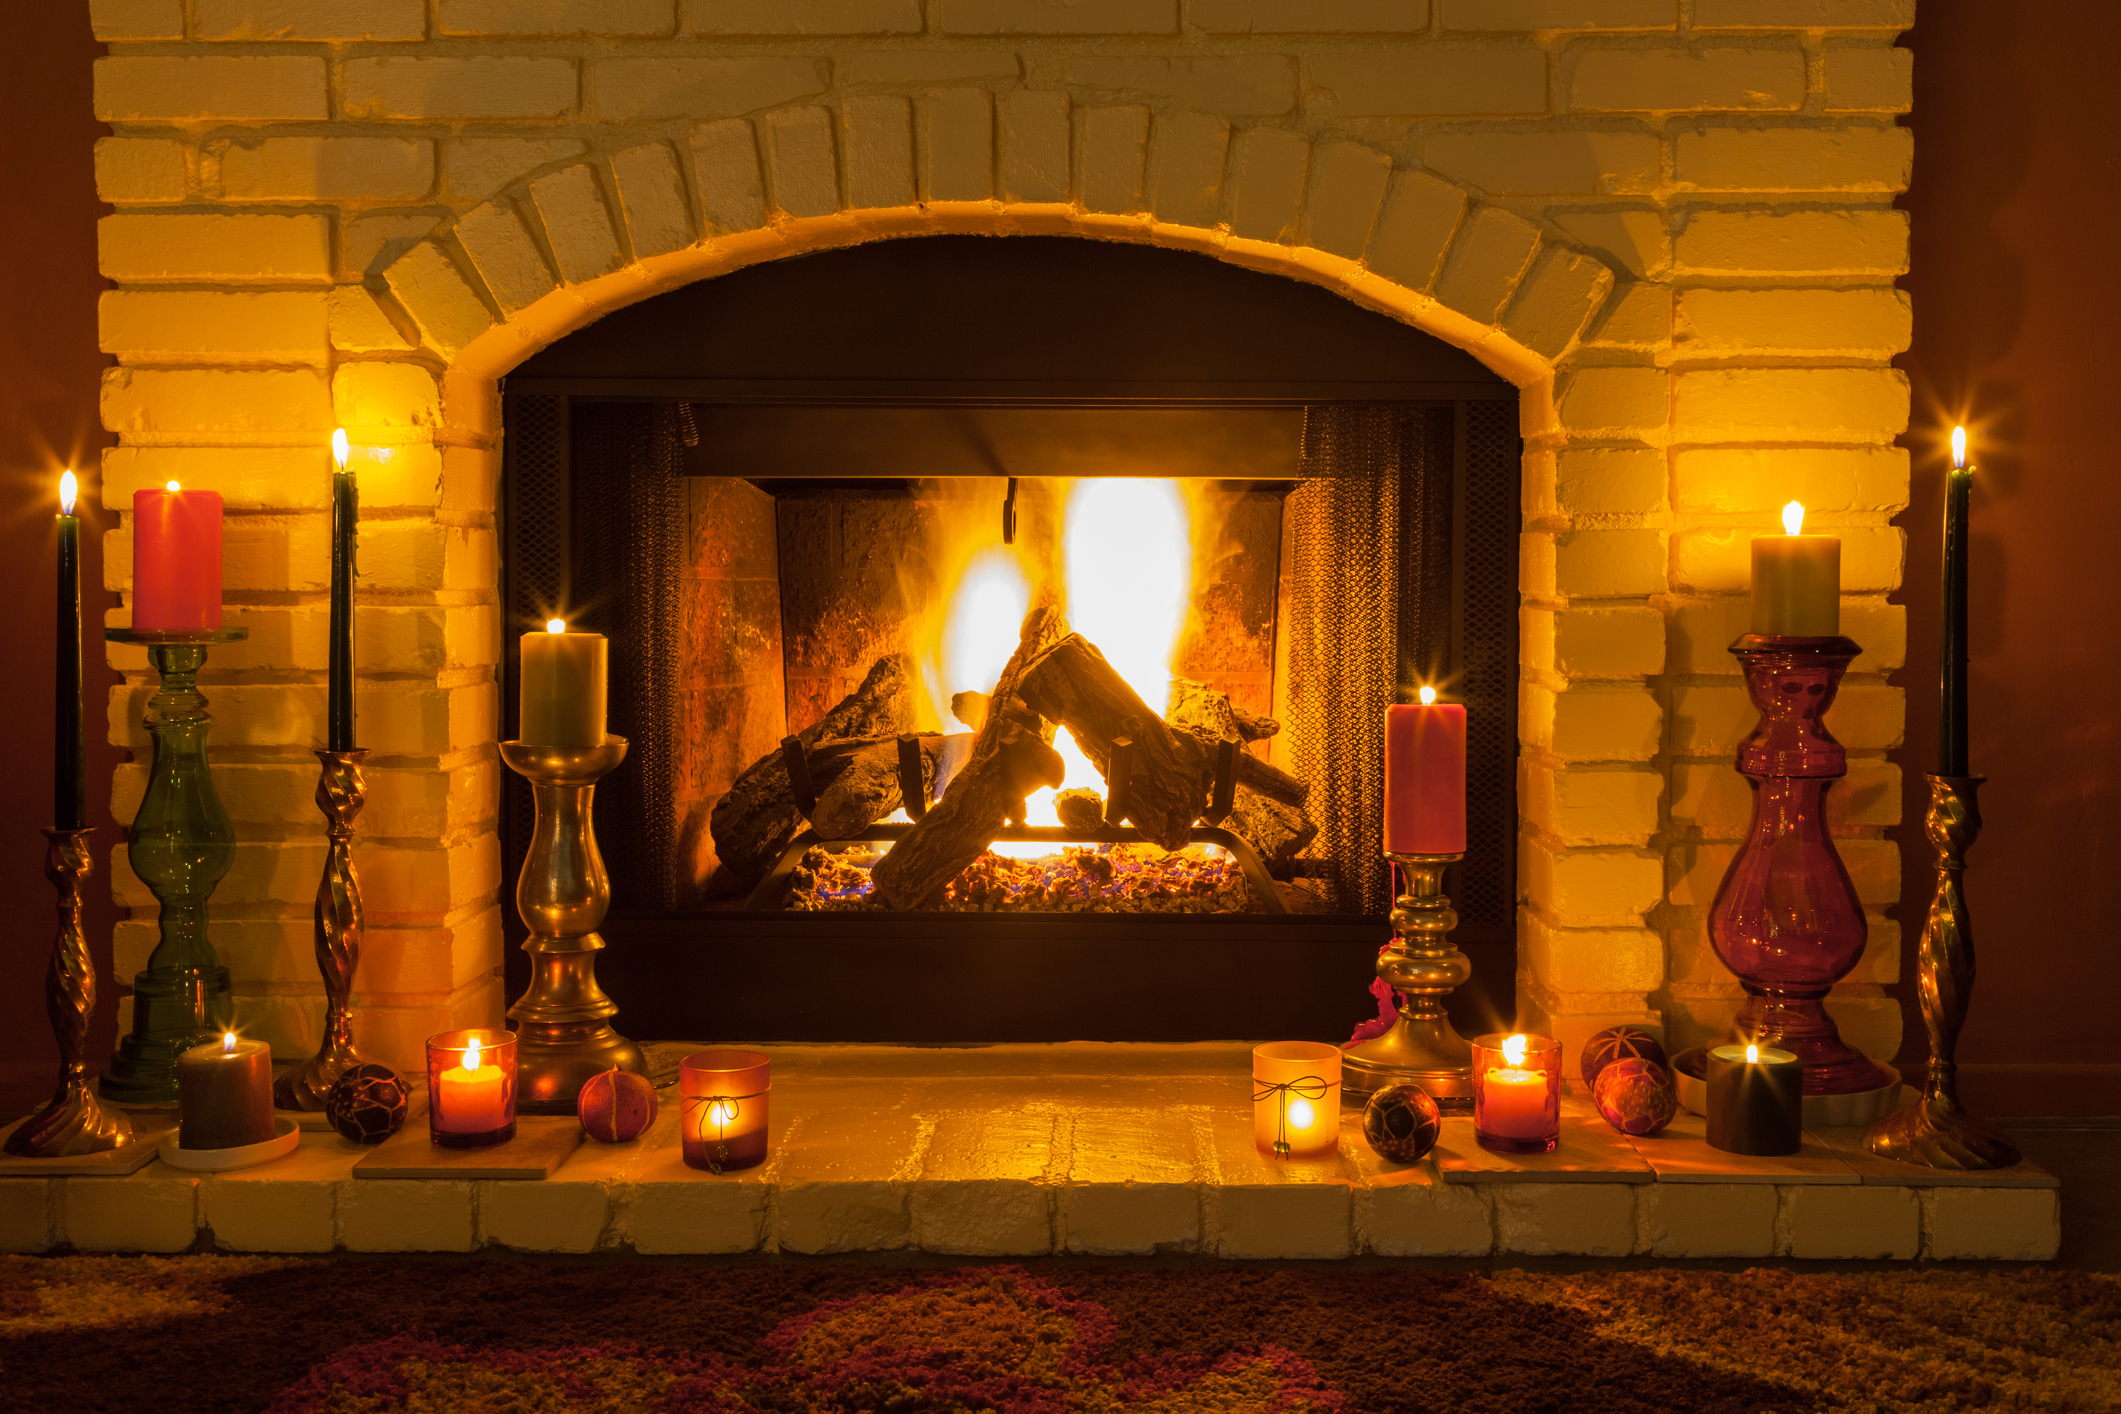 Fireplace Christmas Music.No Fireplace No Problem Here S A Fireplace Video With